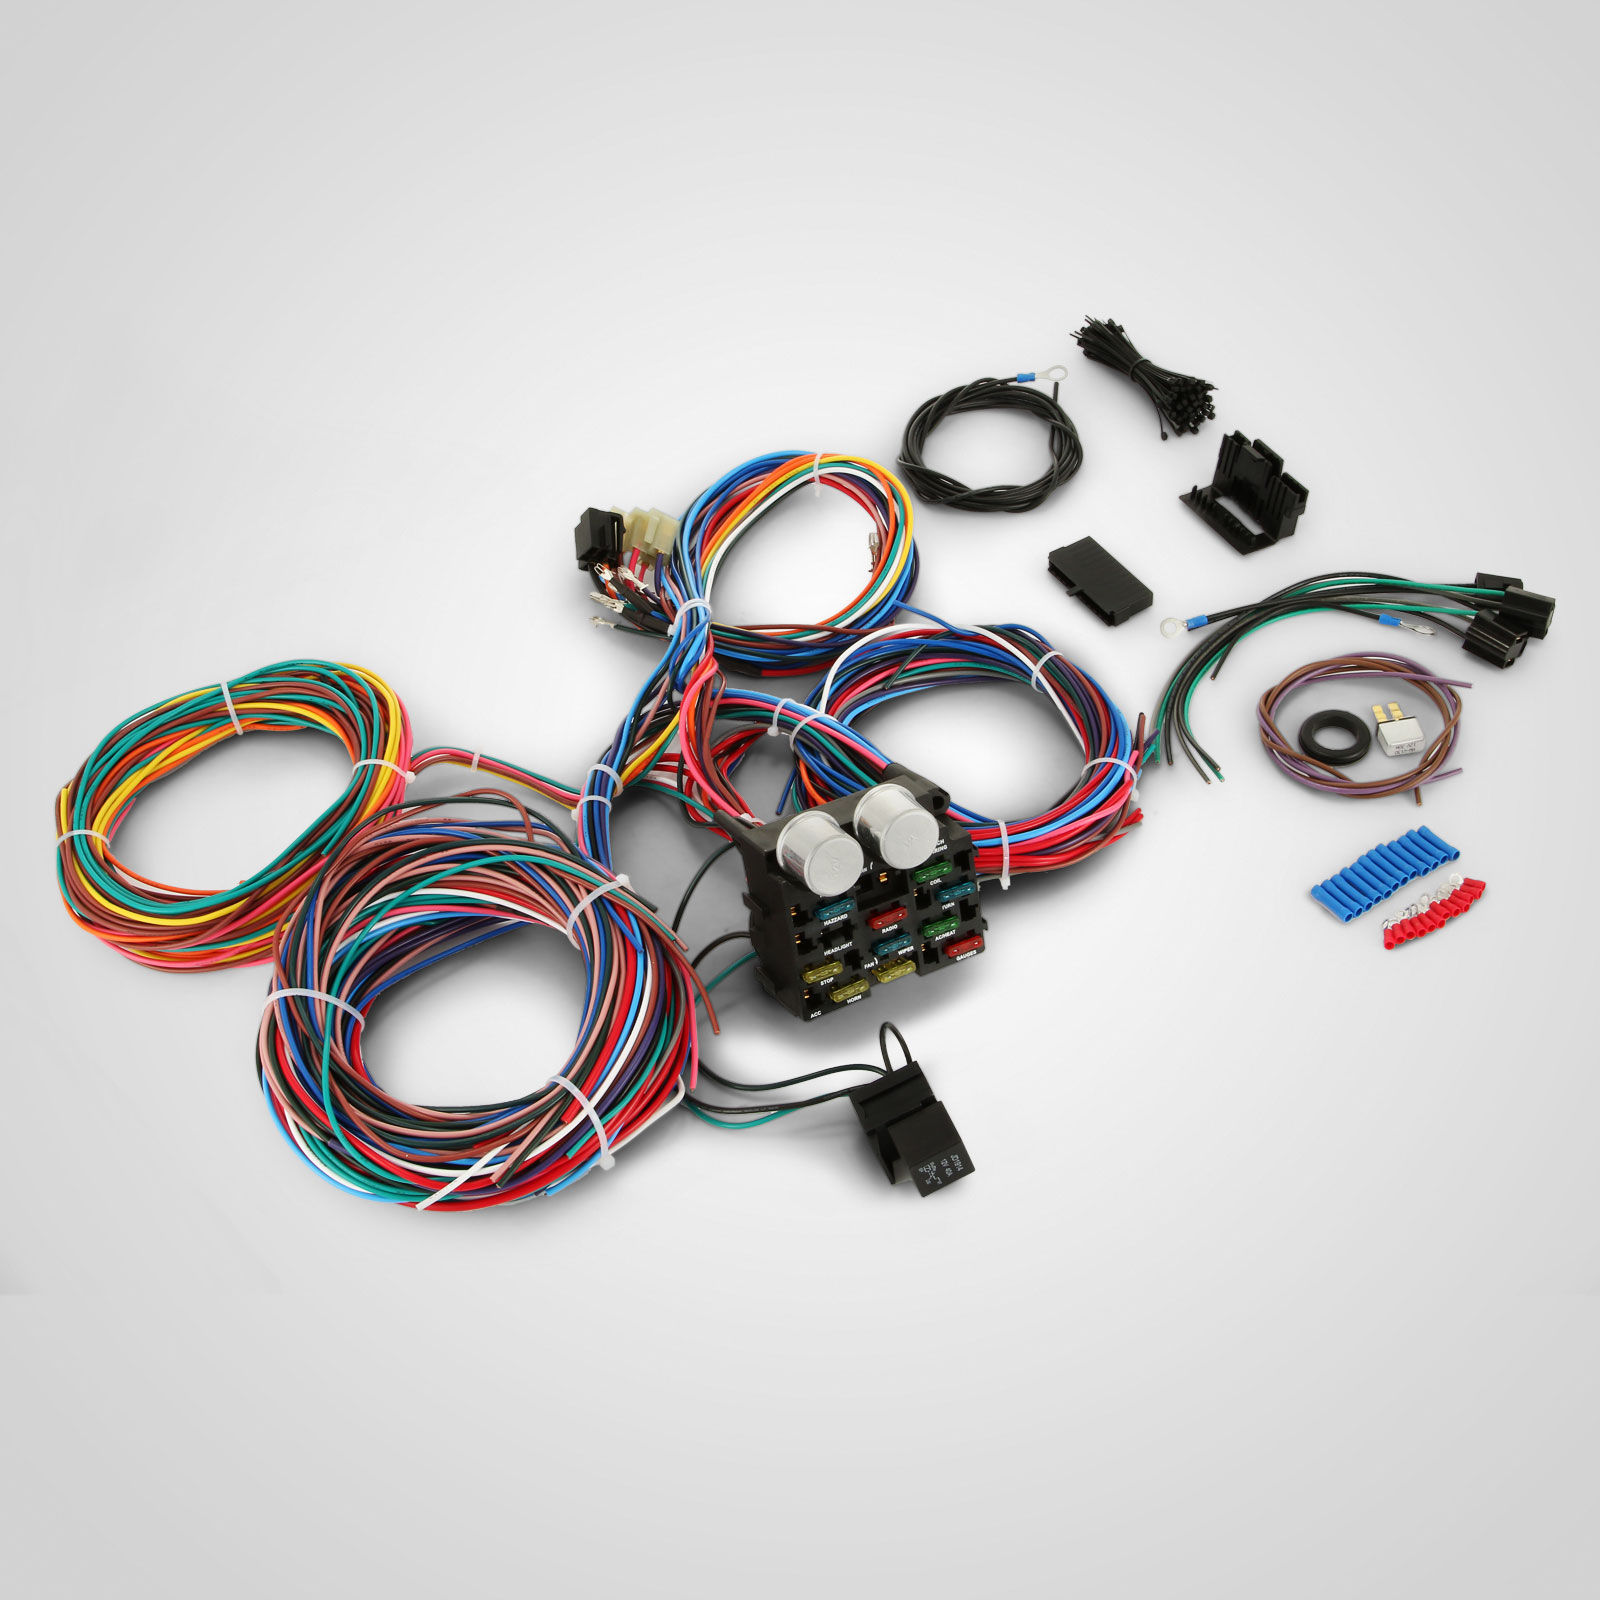 hight resolution of details about pop 12 circuit harness fuse box street hot rat rod wiring car truck new